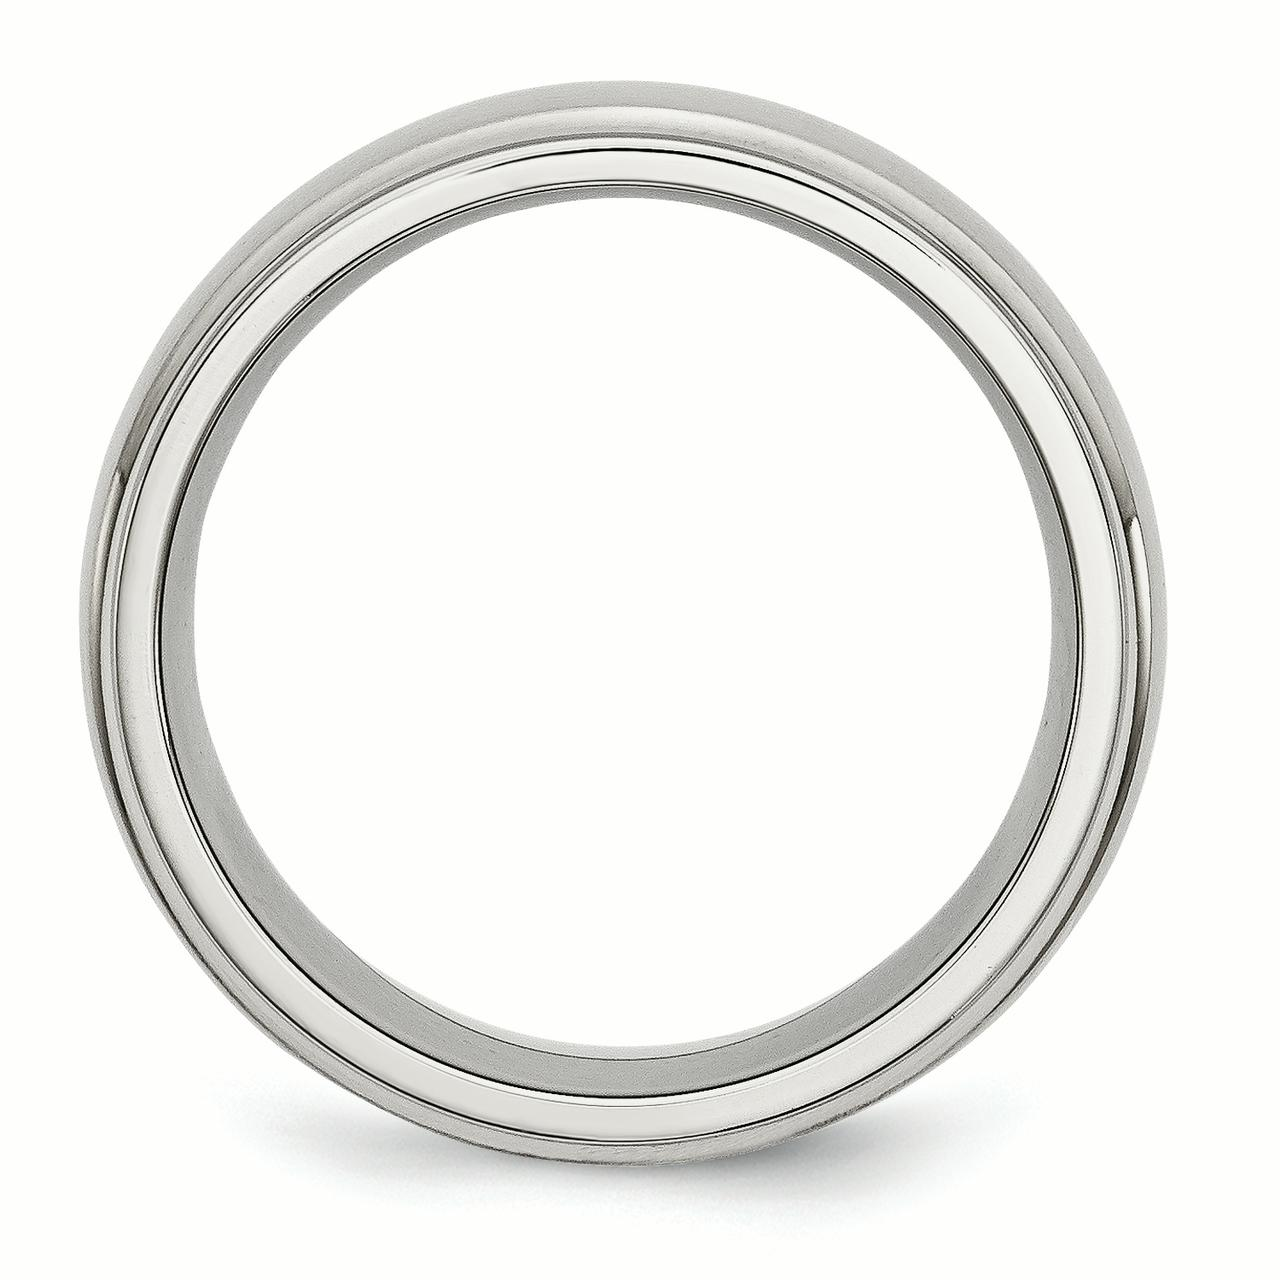 Stainless Steel Ridged Edge 8mm Brushed Wedding Ring Band Size 10.00 Classic Domed W/edge Fashion Jewelry Gifts For Women For Her - image 4 of 5